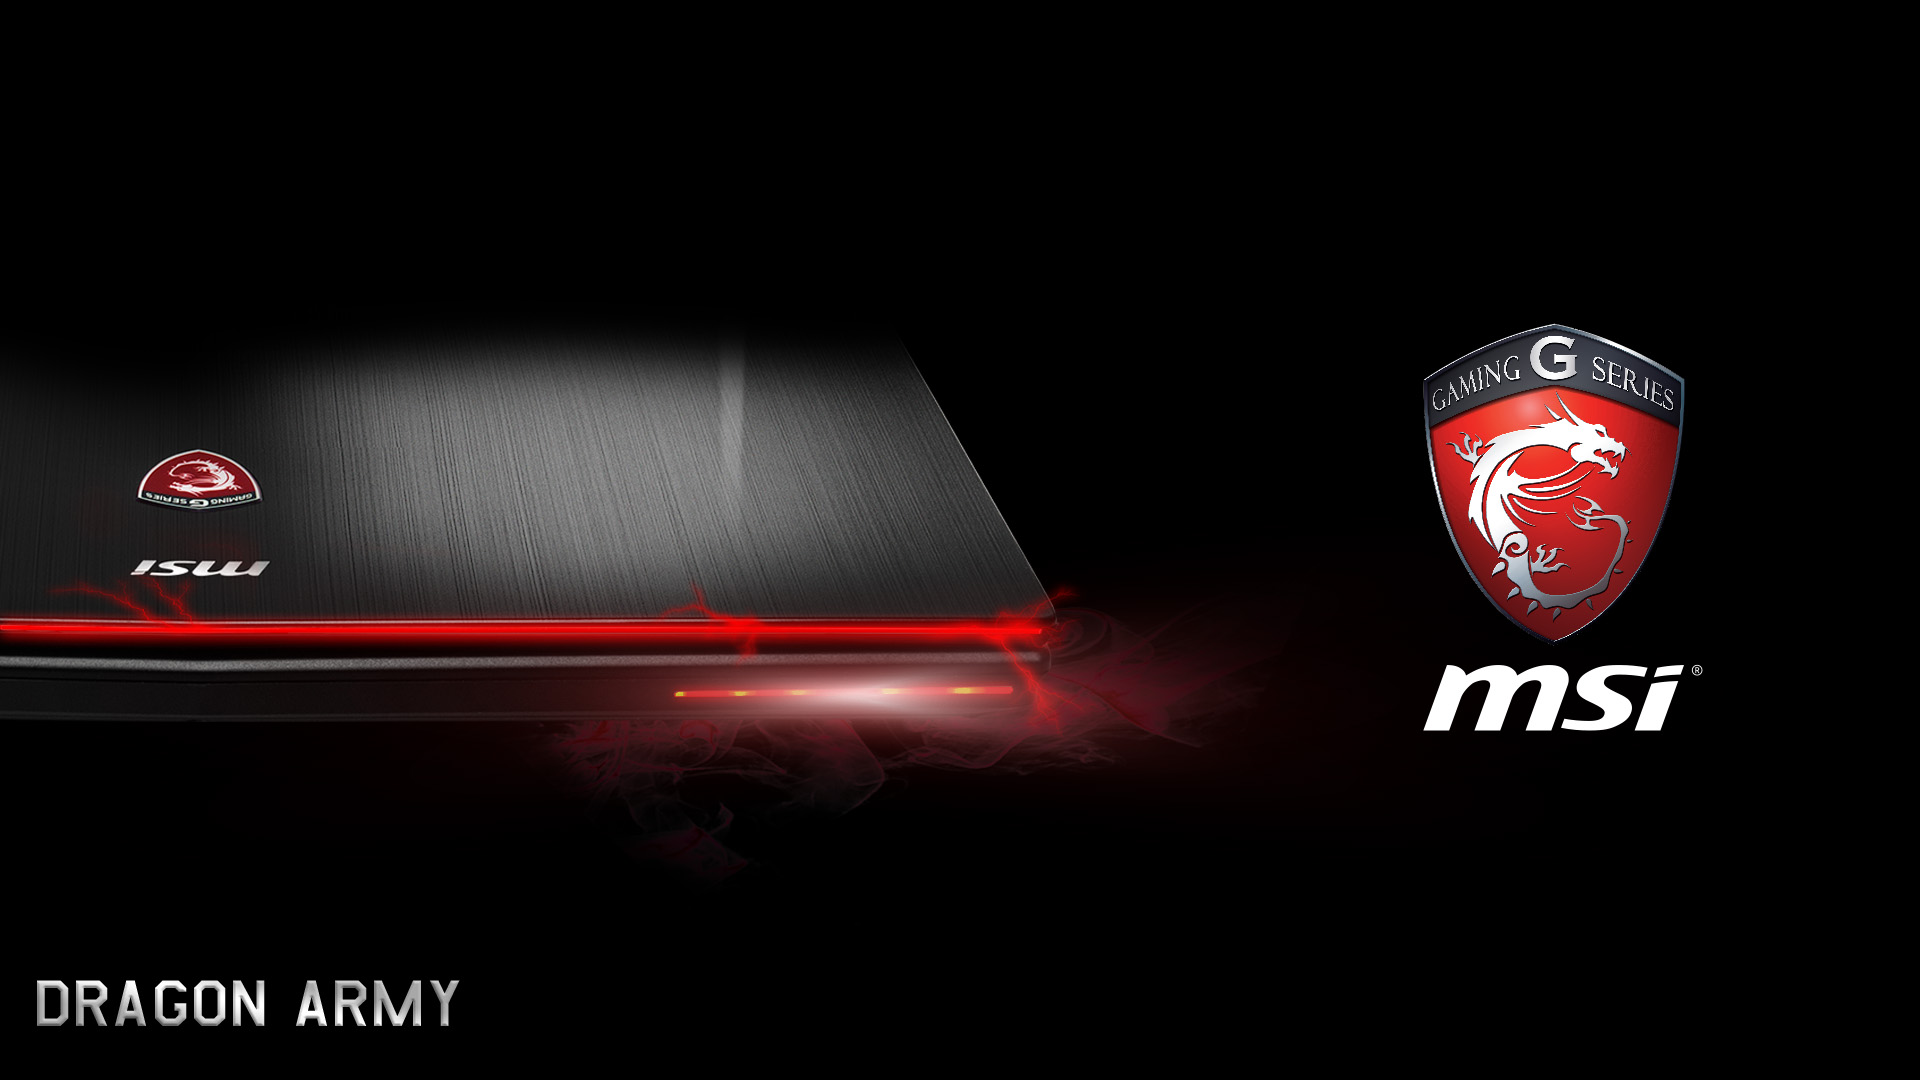 Wallpapers Hd Msi Gaming X 1920 X 1080 816 Kb Png HD Wallpapers 1920x1080